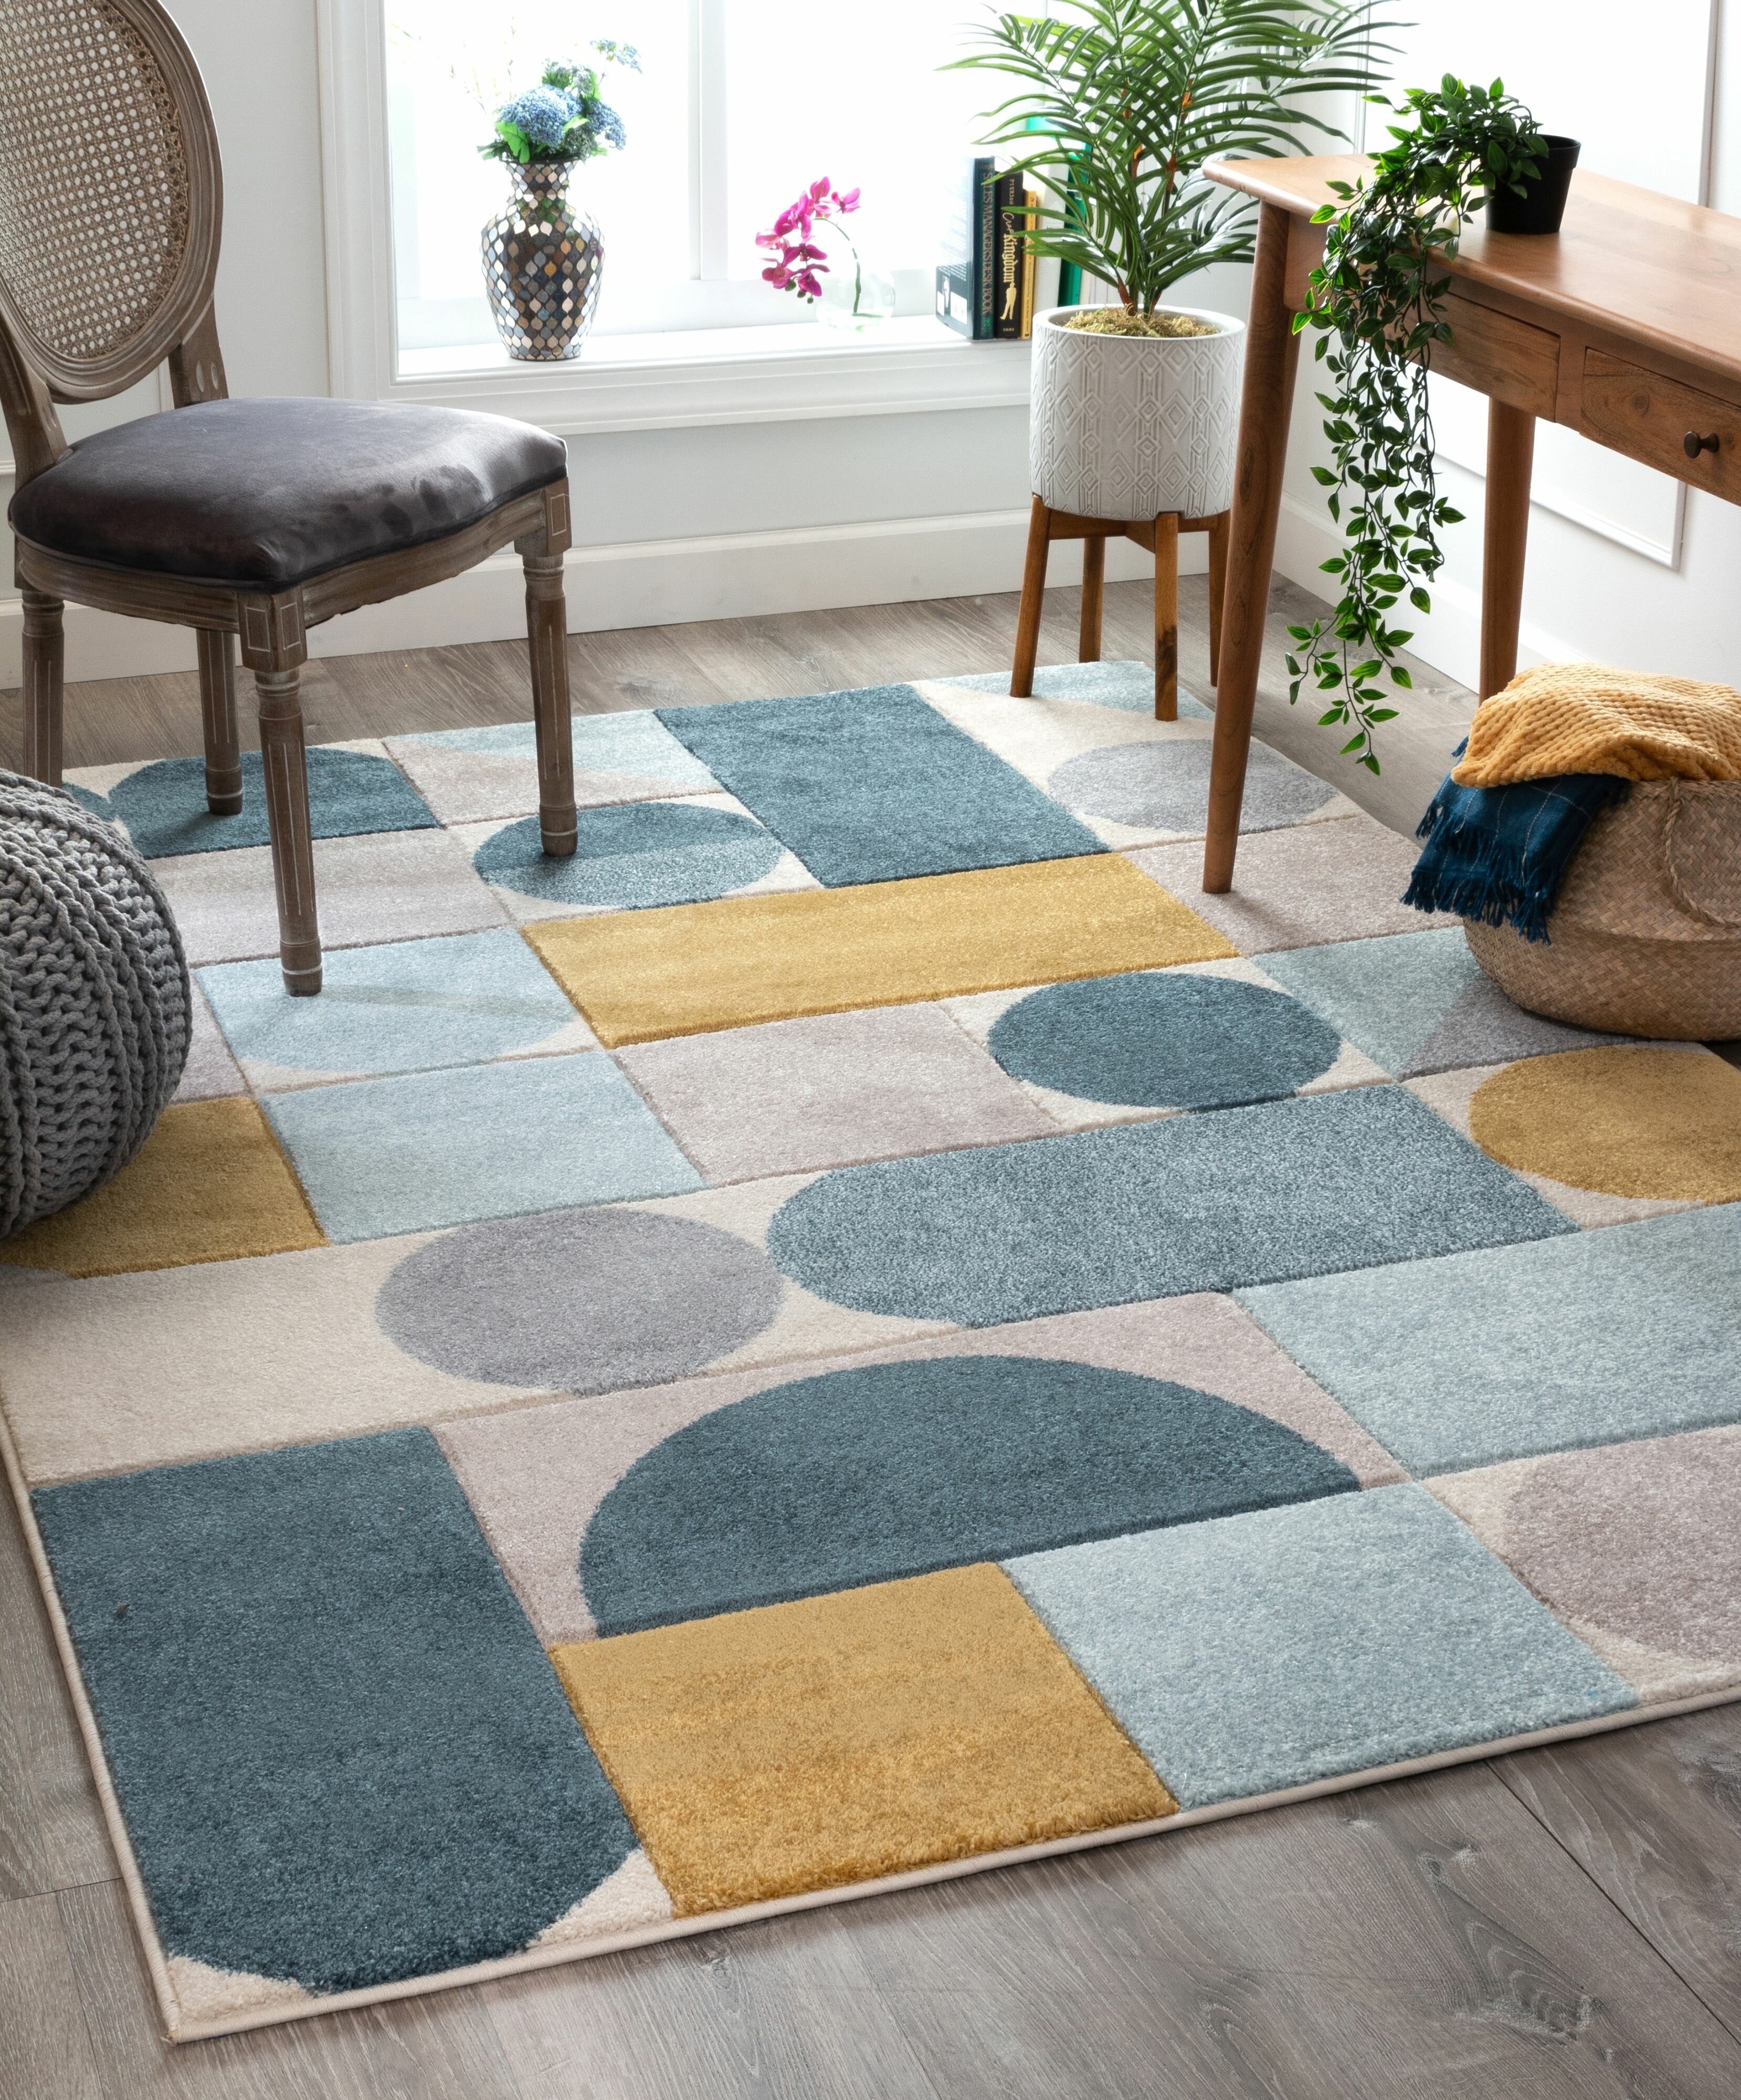 Shop Audrey Gray Mid Century Modern Area Rug: Well Woven Ruby Dede Mid-Century Modern Geometric Teal